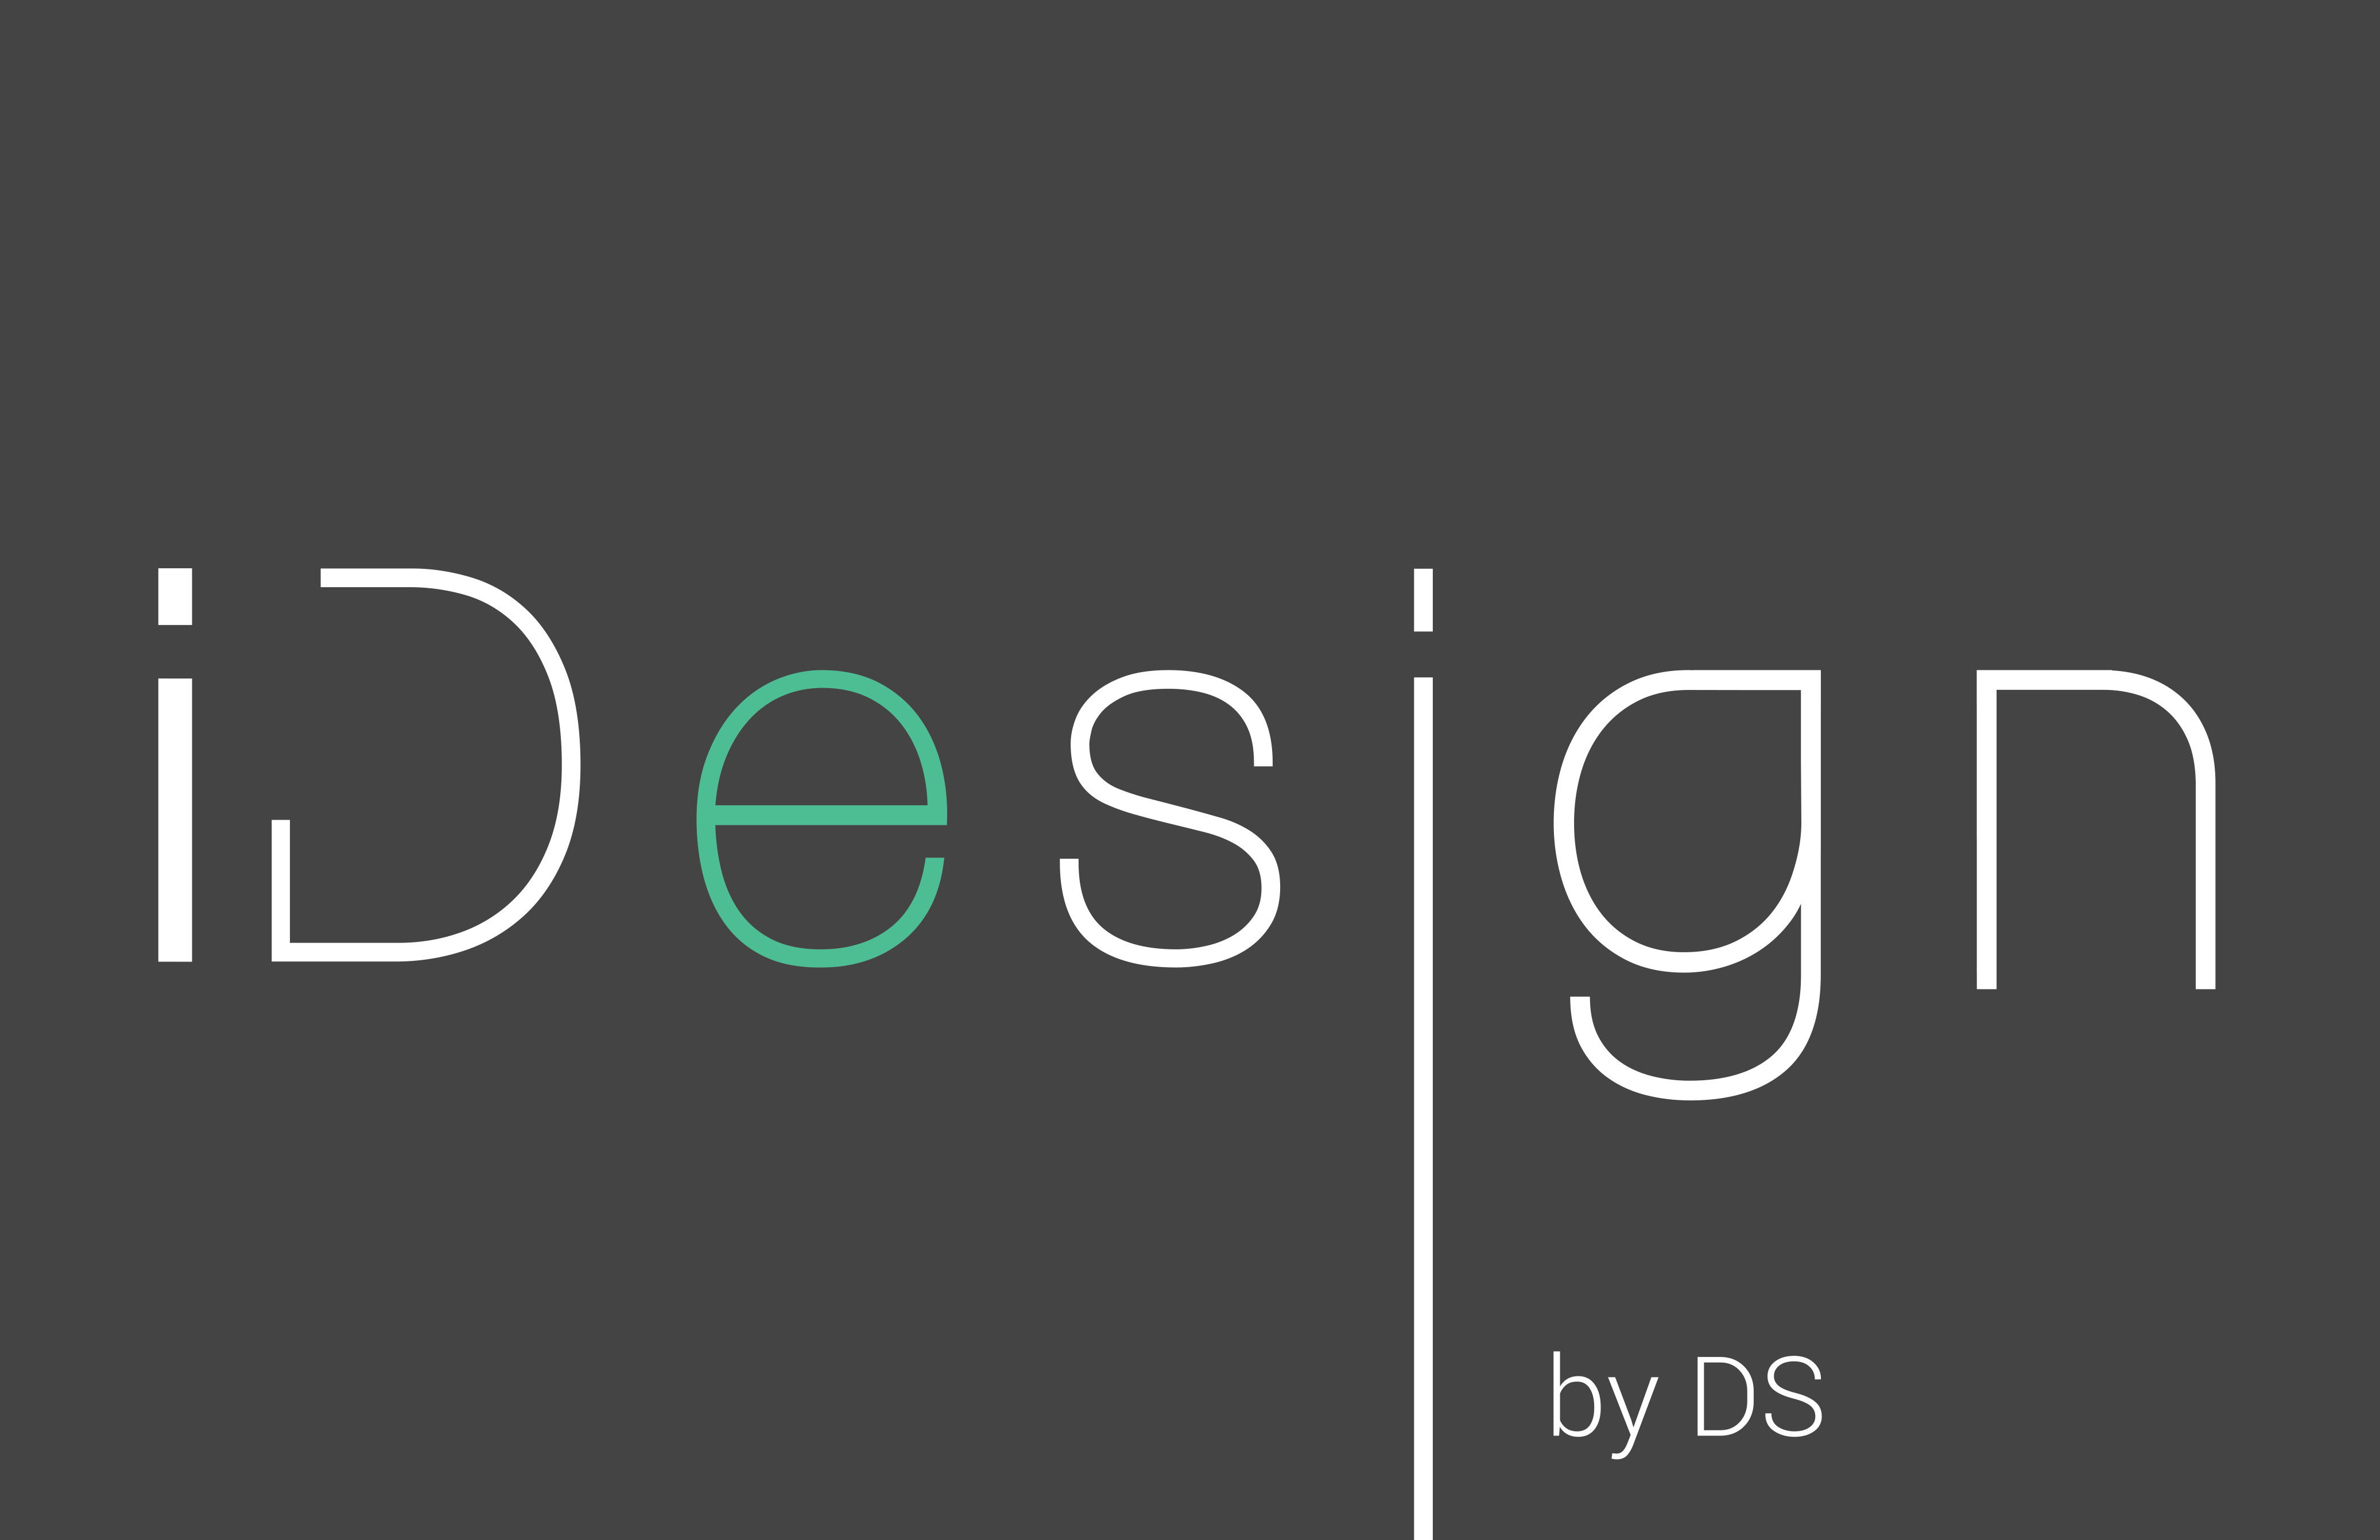 idesign by ds